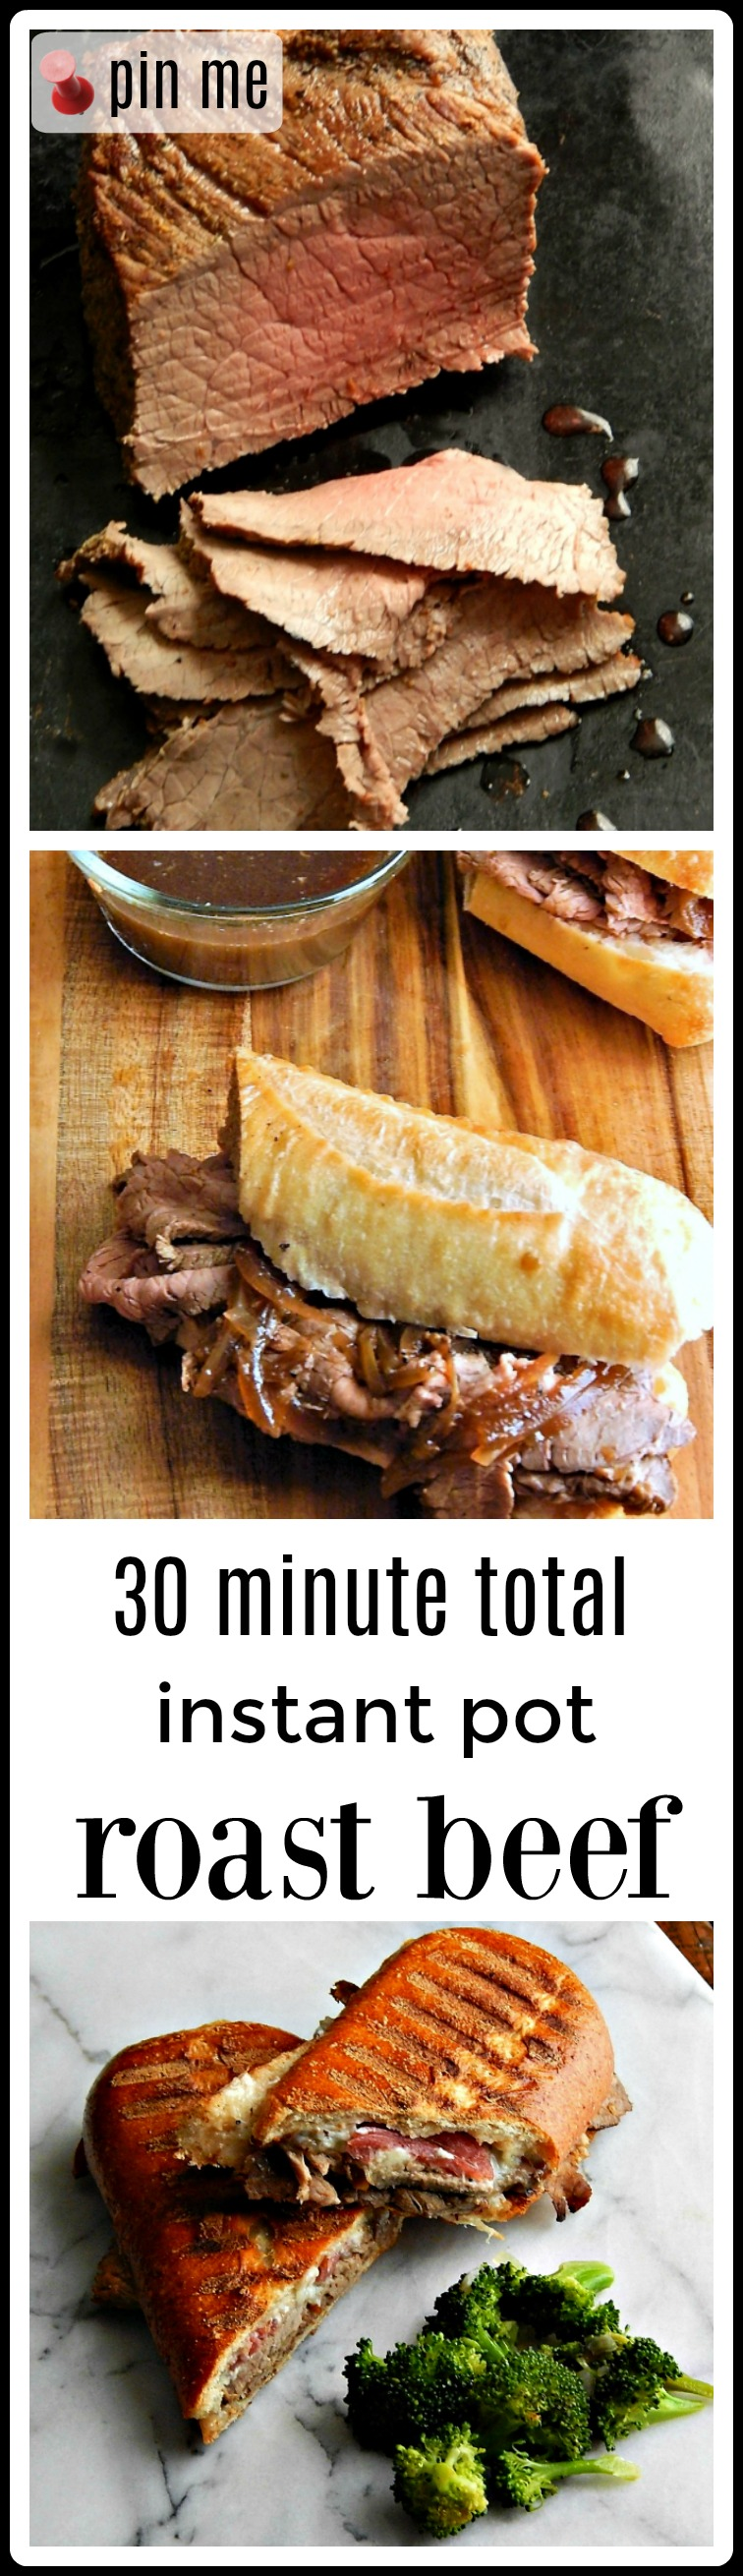 30 Minute Total Time Instant Pot Roast - beautiful, medium rare in minutes with no effort! Even a cheap roast turns out great! #InstantPotRoast #InstantPotRumpRoast #InstantPotRoastMediumRare